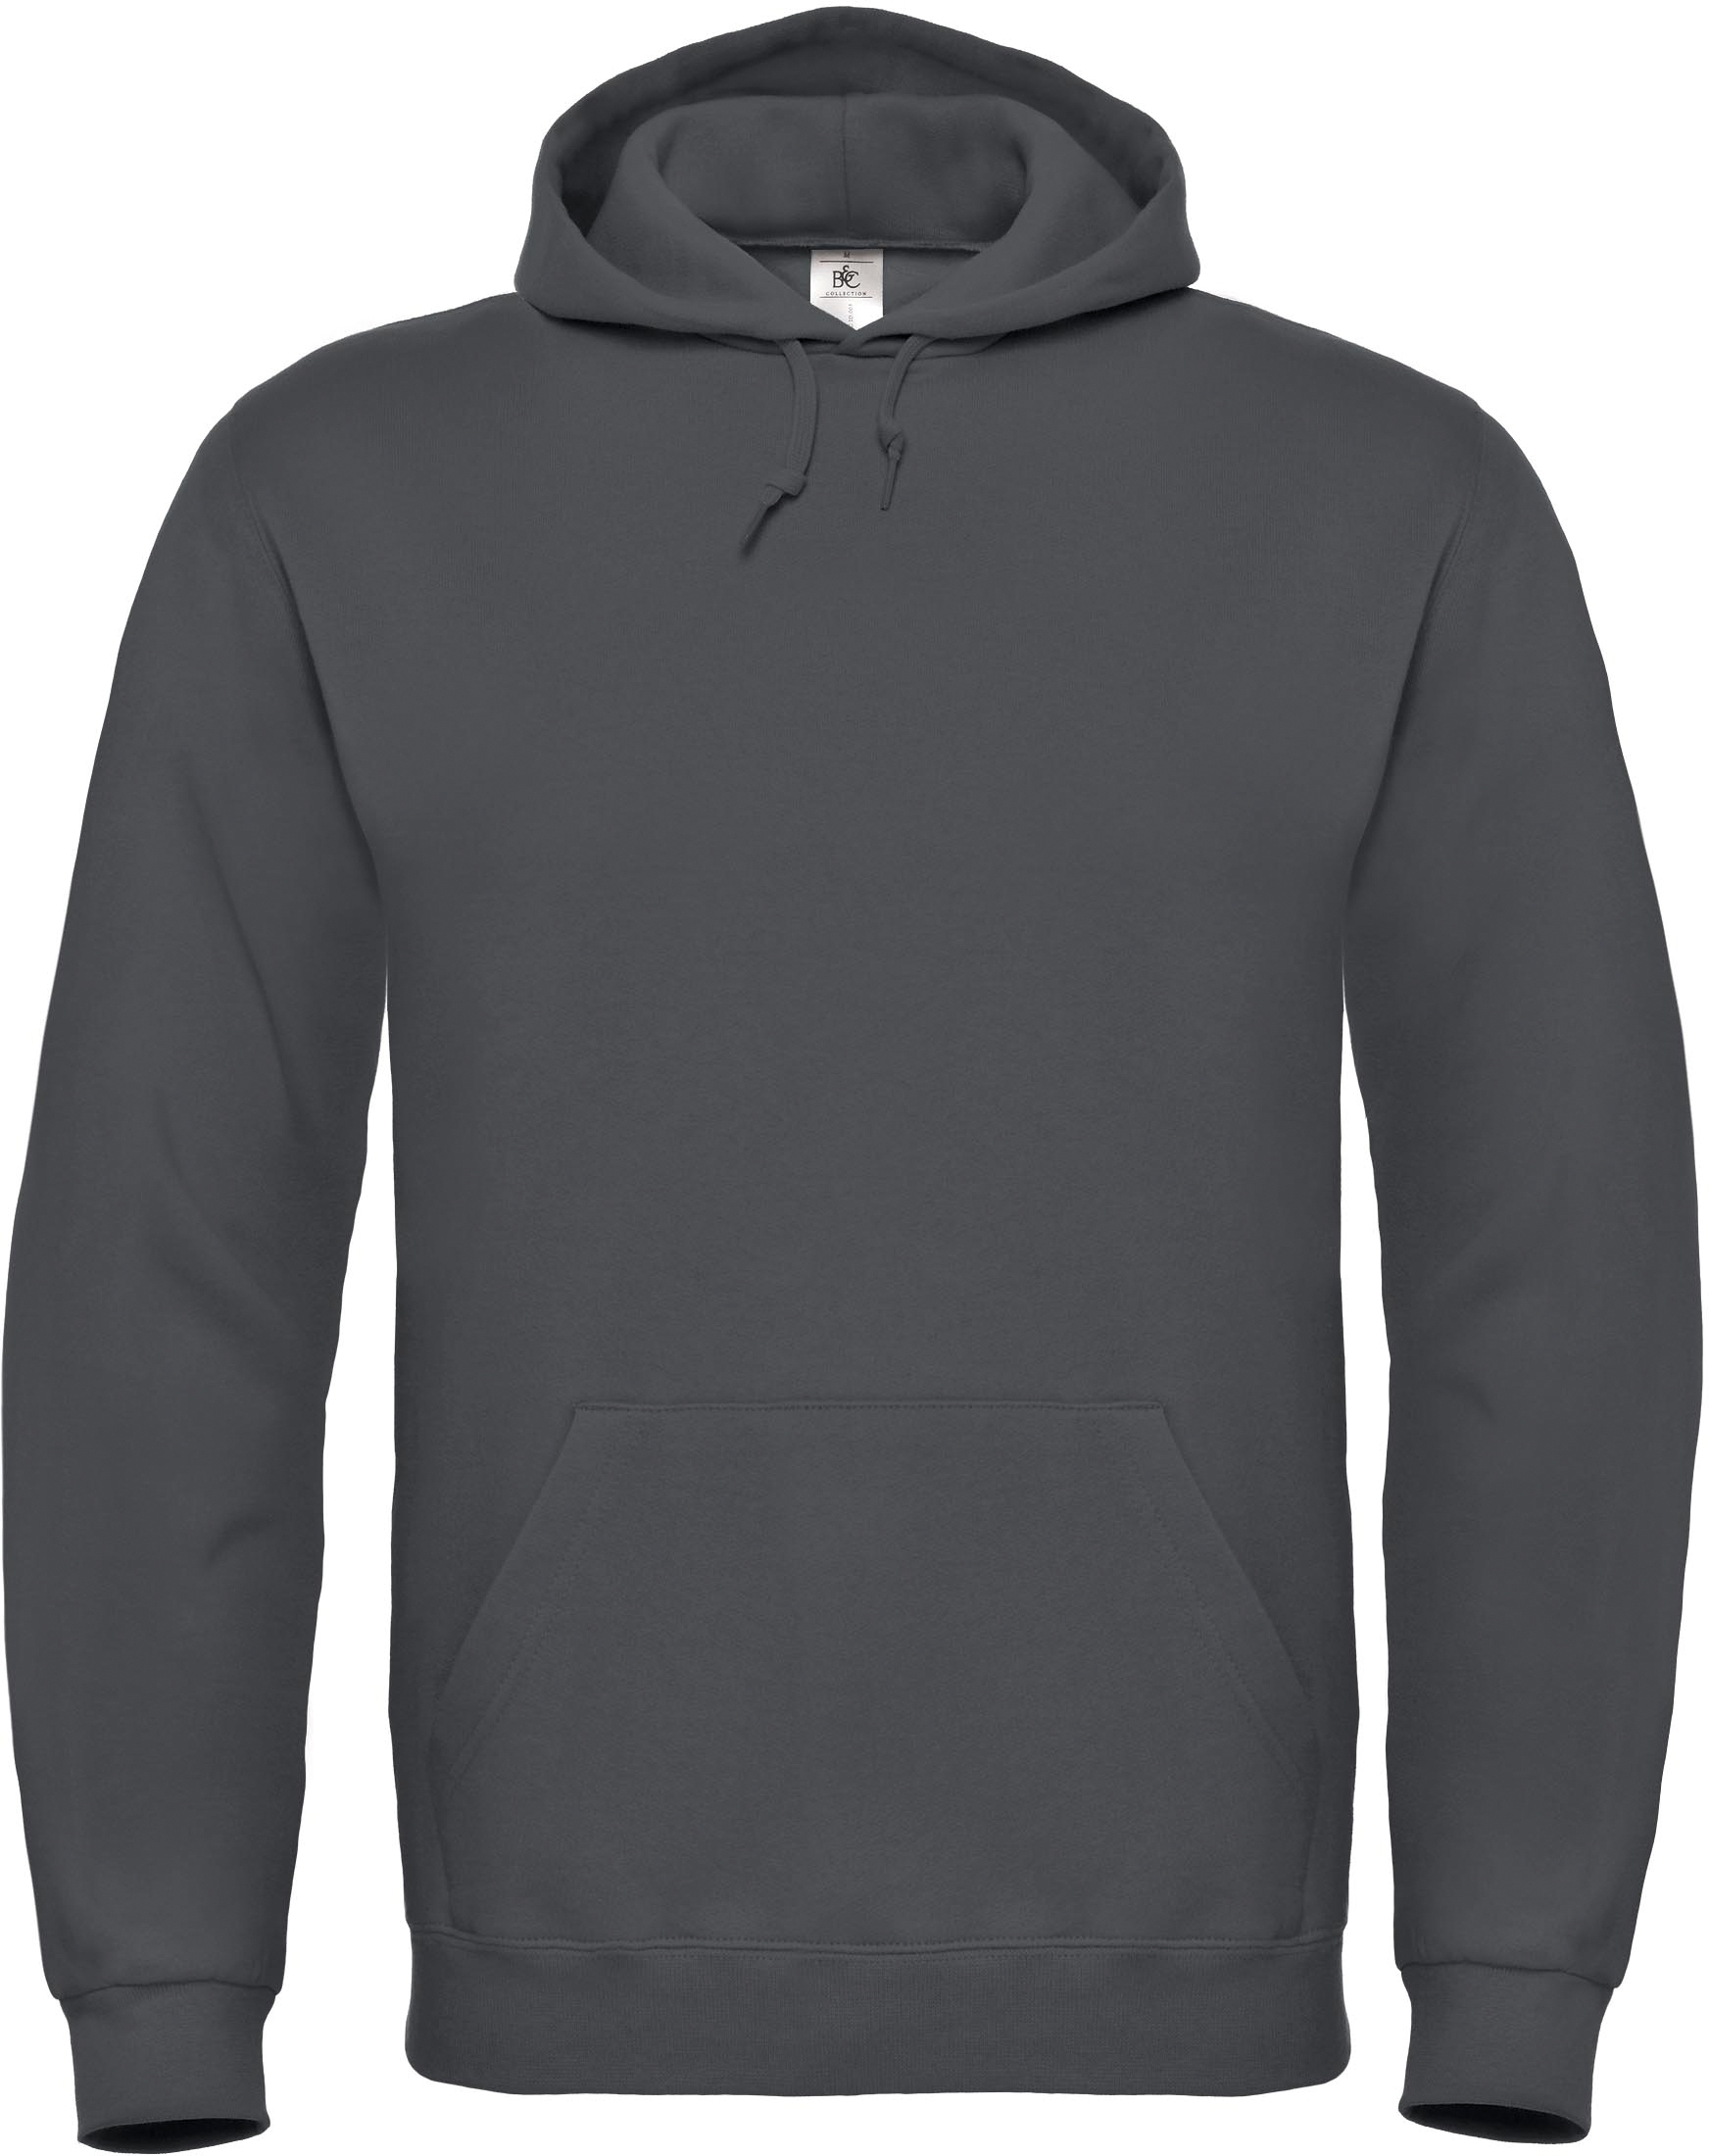 SWEAT-SHIRT CAPUCHE ID.003 Anthracite Gris